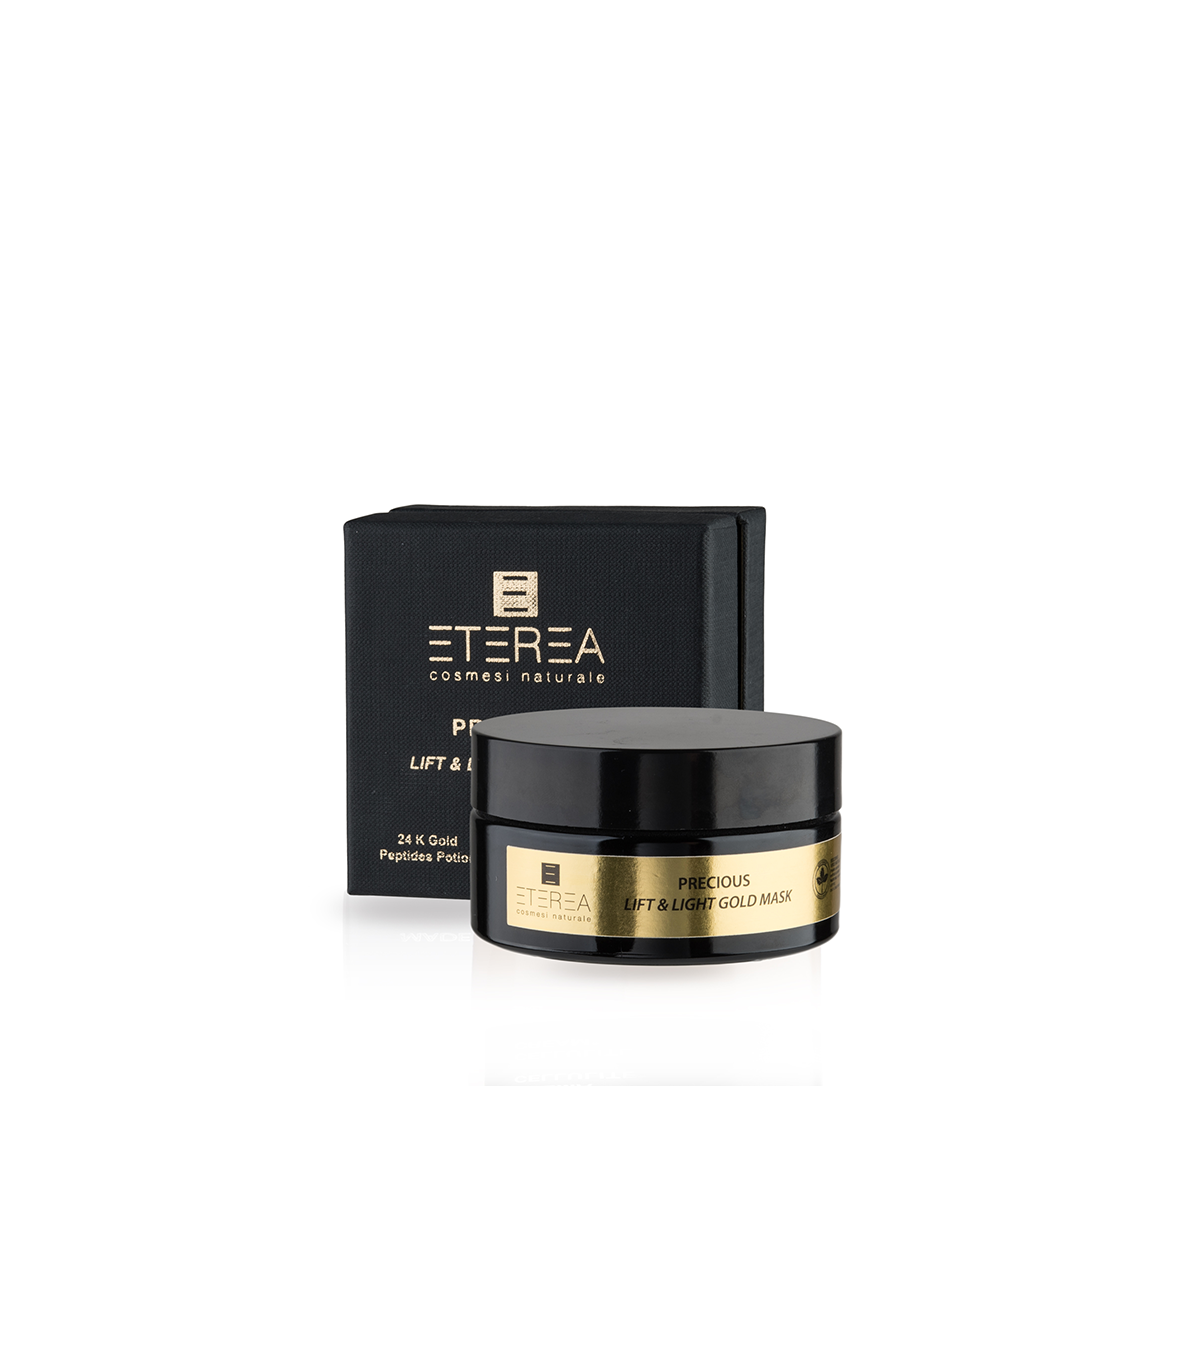 ETEREA Cosmesi Naturale Precious Lift & Light Gold Mask - 100 ml von ETEREA Cosmesi Naturale